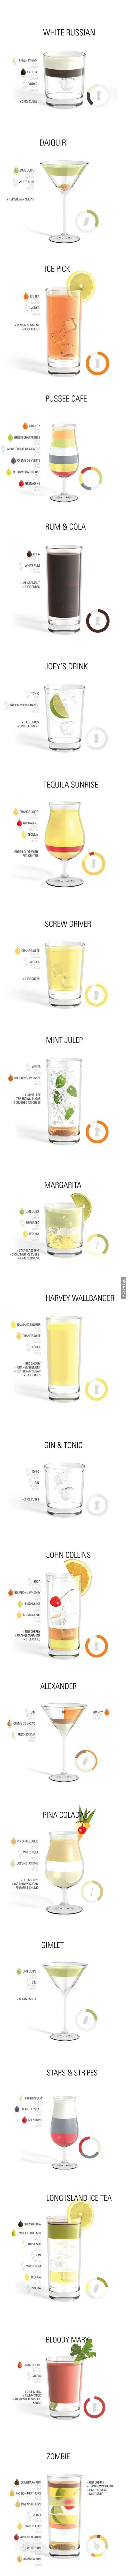 You should taste these before you die - 9GAG